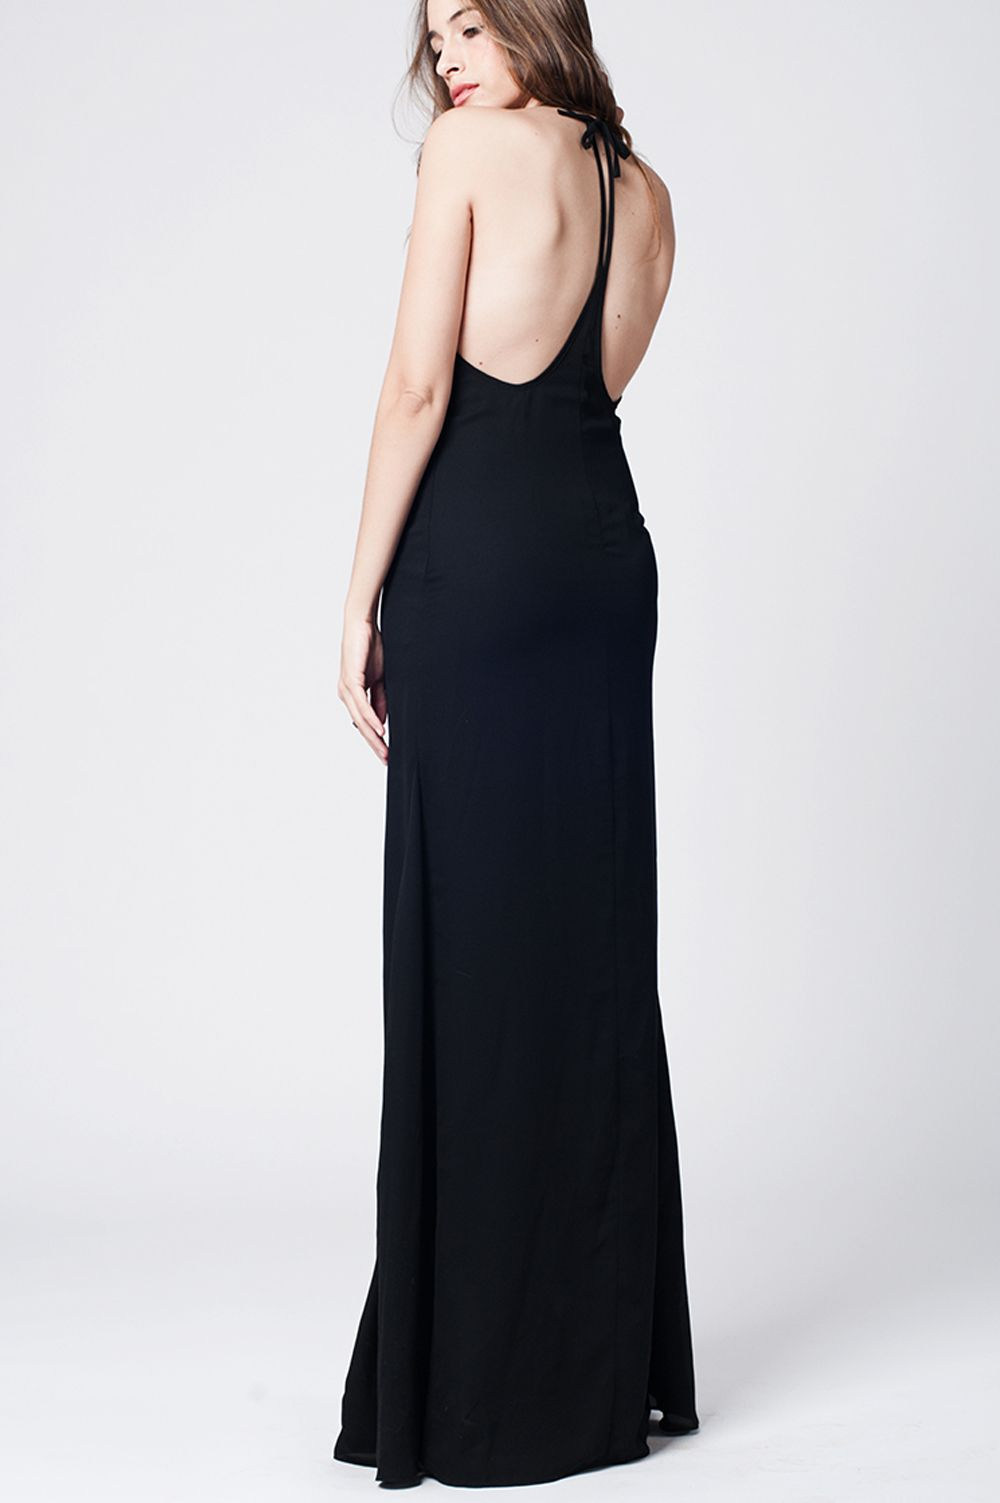 Black maxi dress with open back